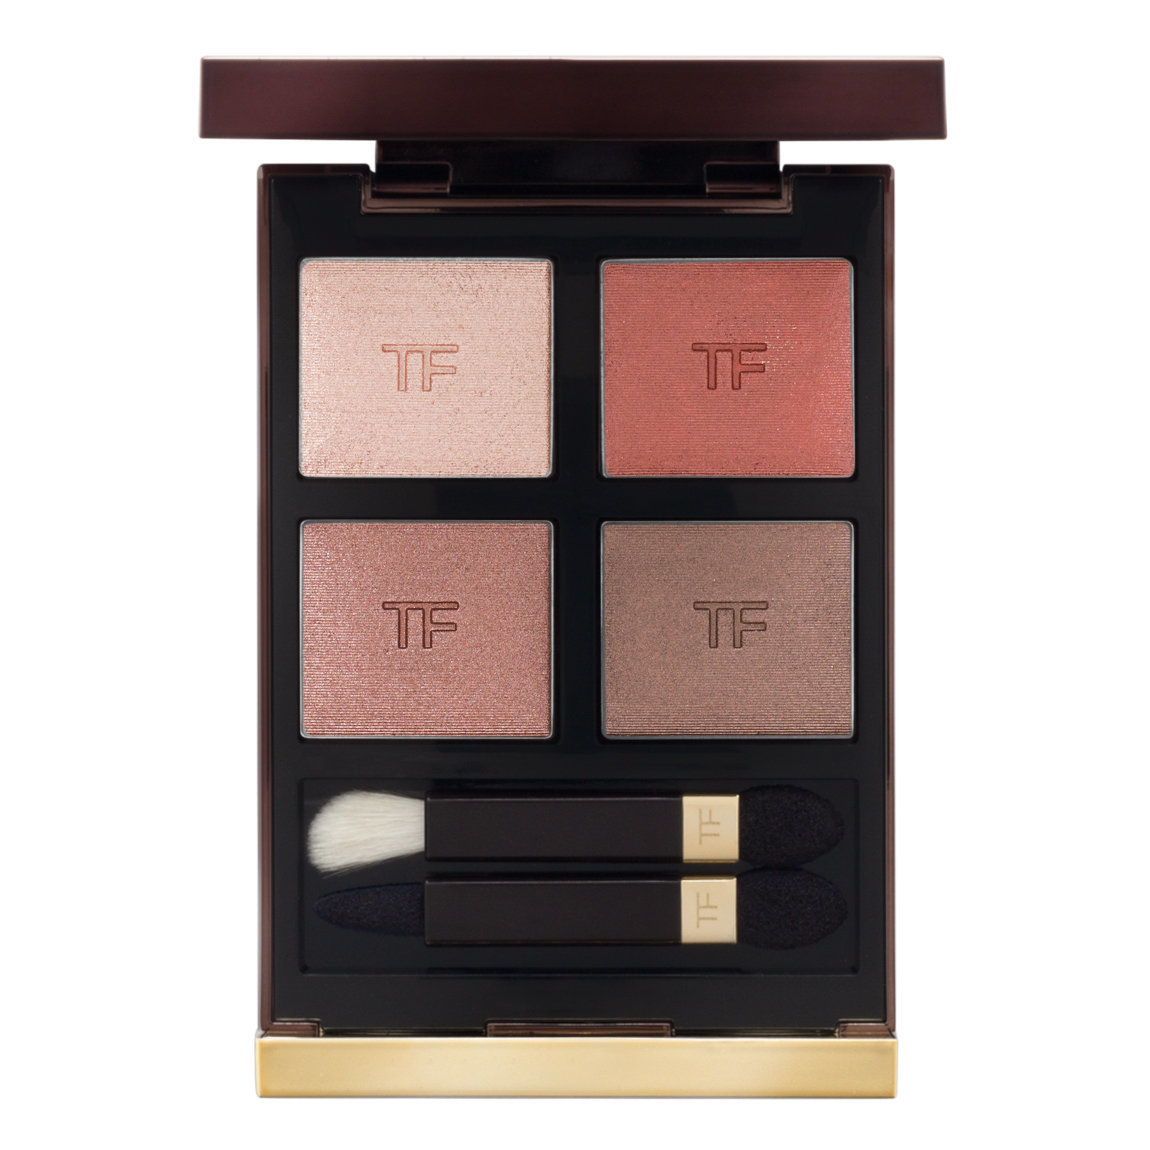 TOM FORD Eye Color Quad Body Heat product swatch.